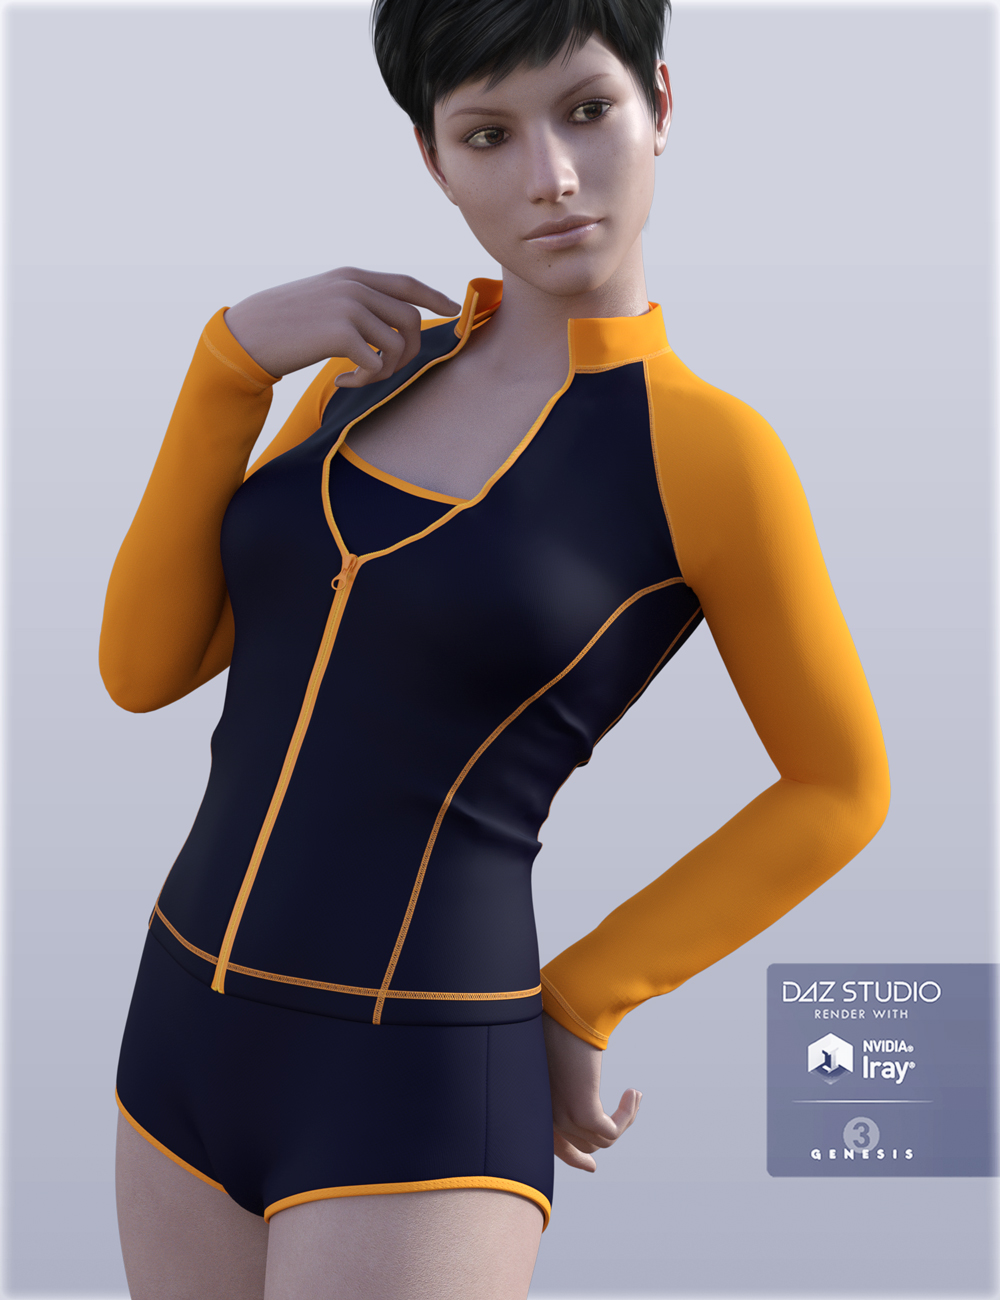 H&C Zip Front Rash Guards for Genesis 3 Female(s) by: IH Kang, 3D Models by Daz 3D